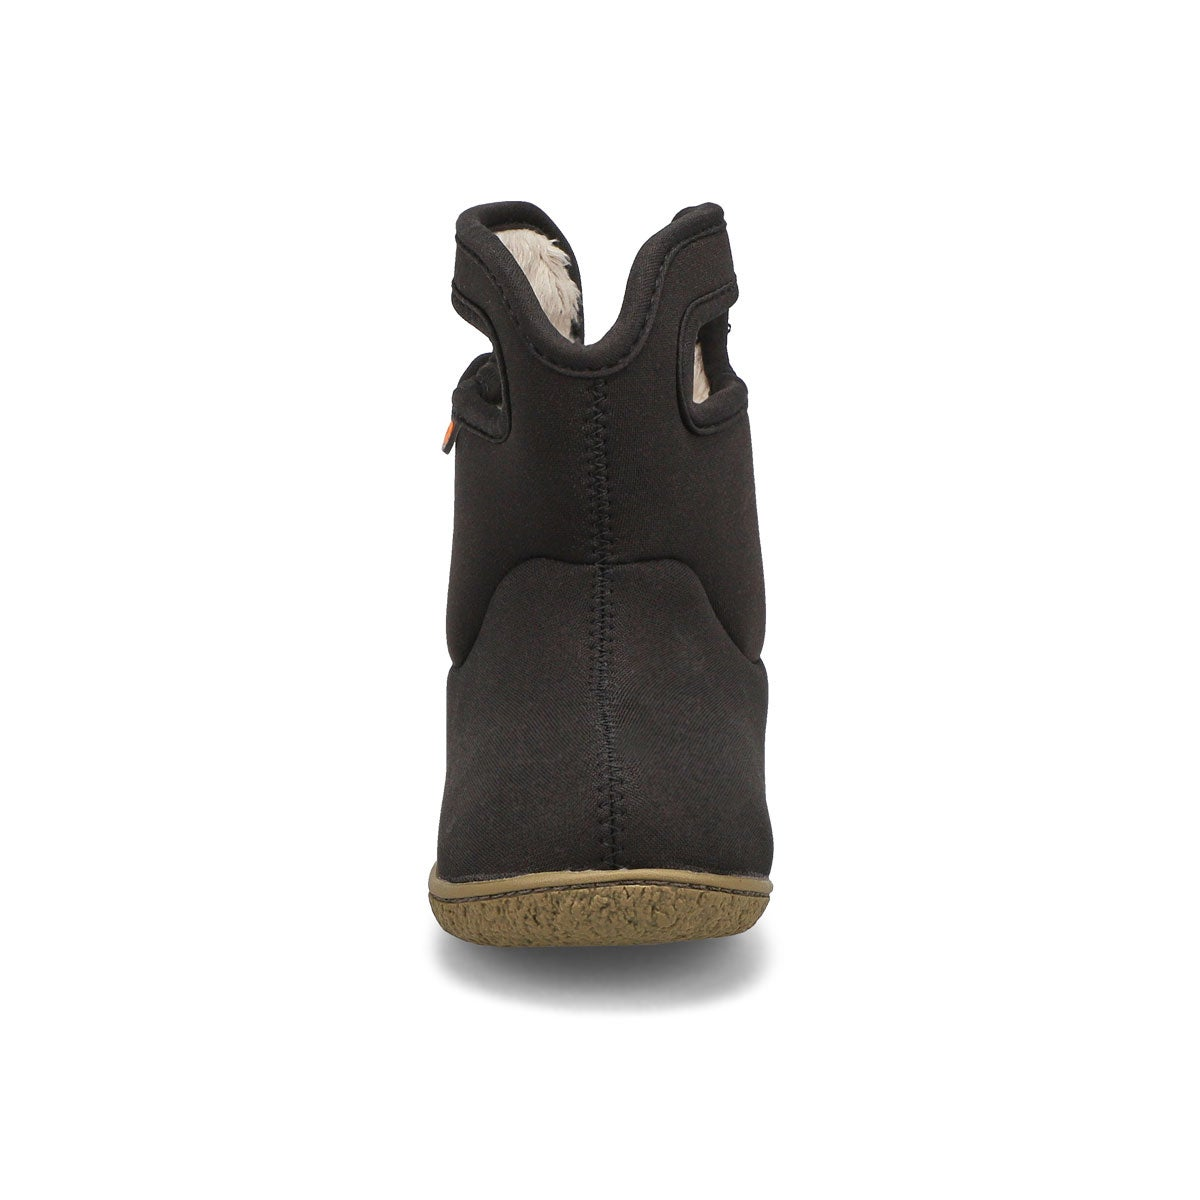 Infs Solid black wtpf boot